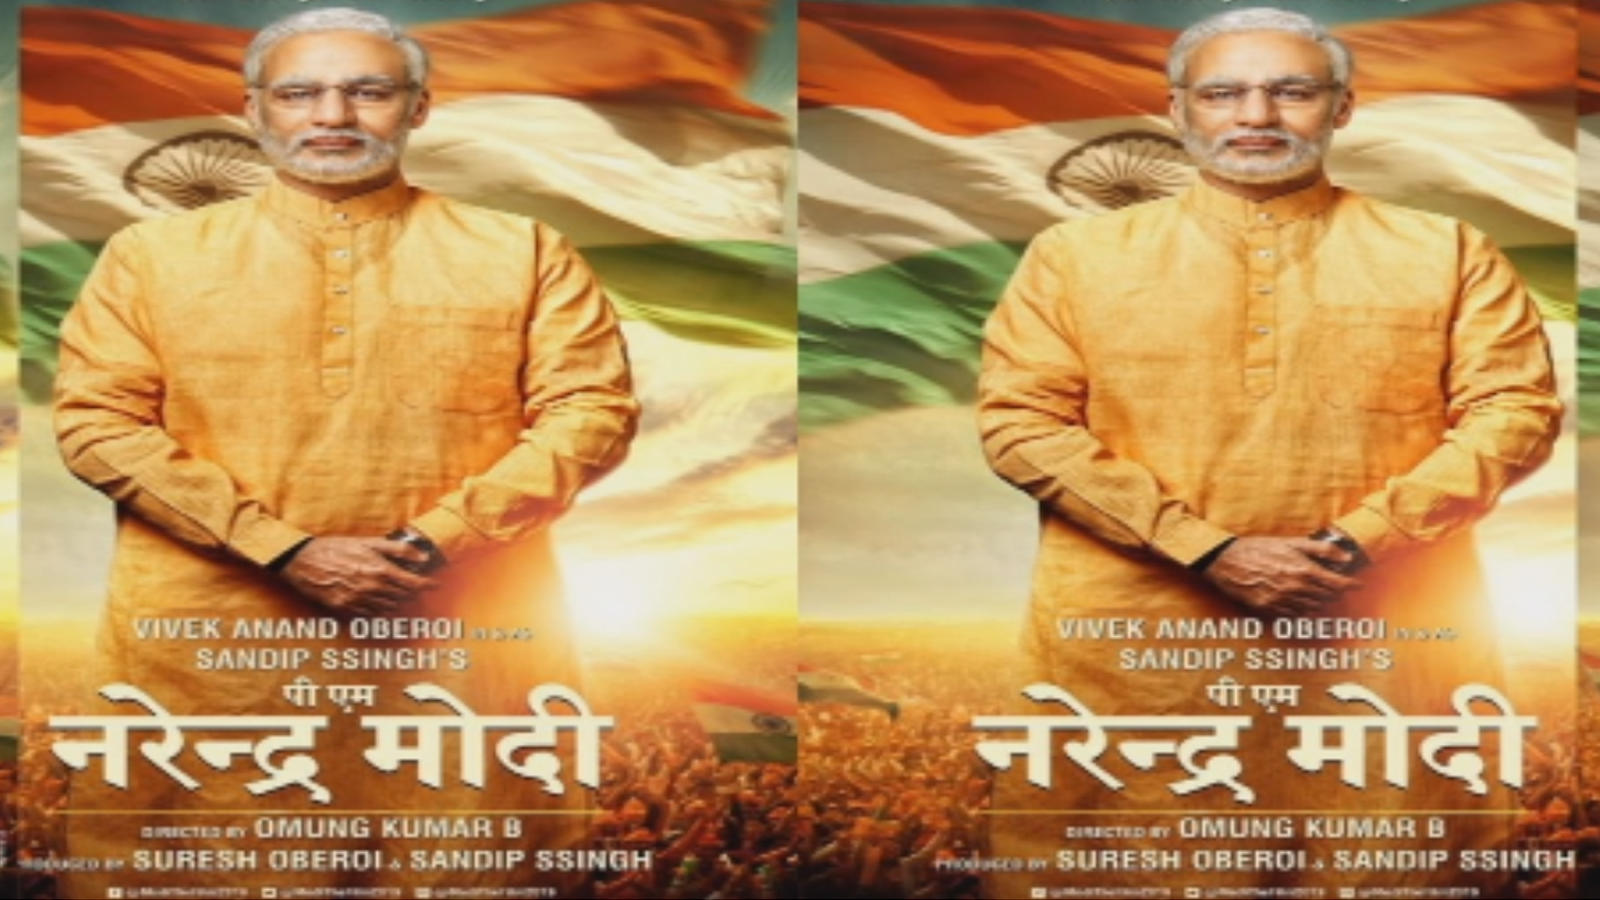 PM Narendra Modi biopic goes on floors